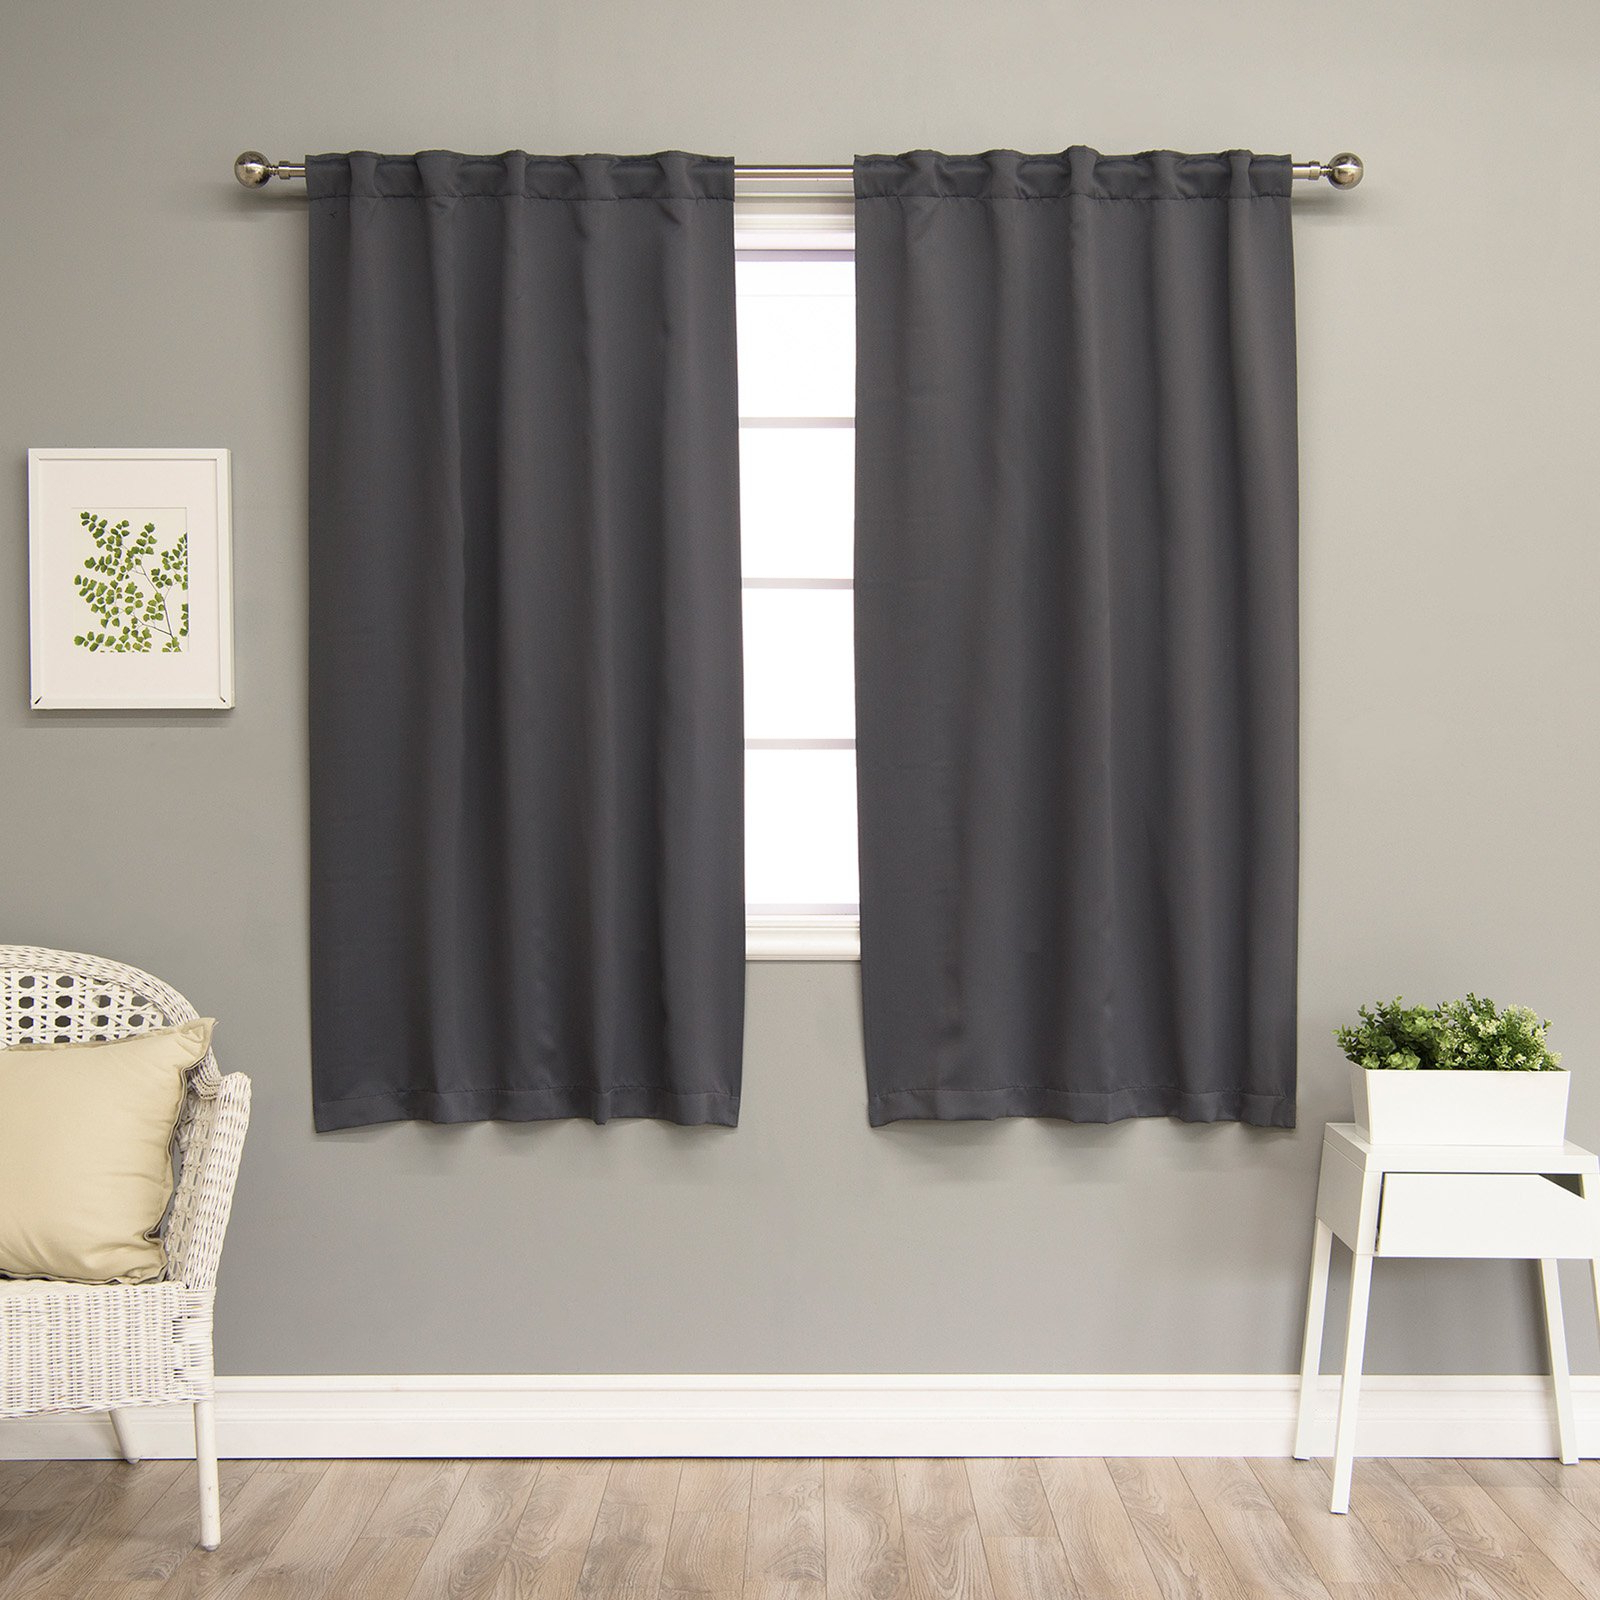 Latest Best Home Fashion Solid Thermal Insulated Blackout Curtain With Solid Thermal Insulated Blackout Curtain Panel Pairs (Gallery 7 of 20)